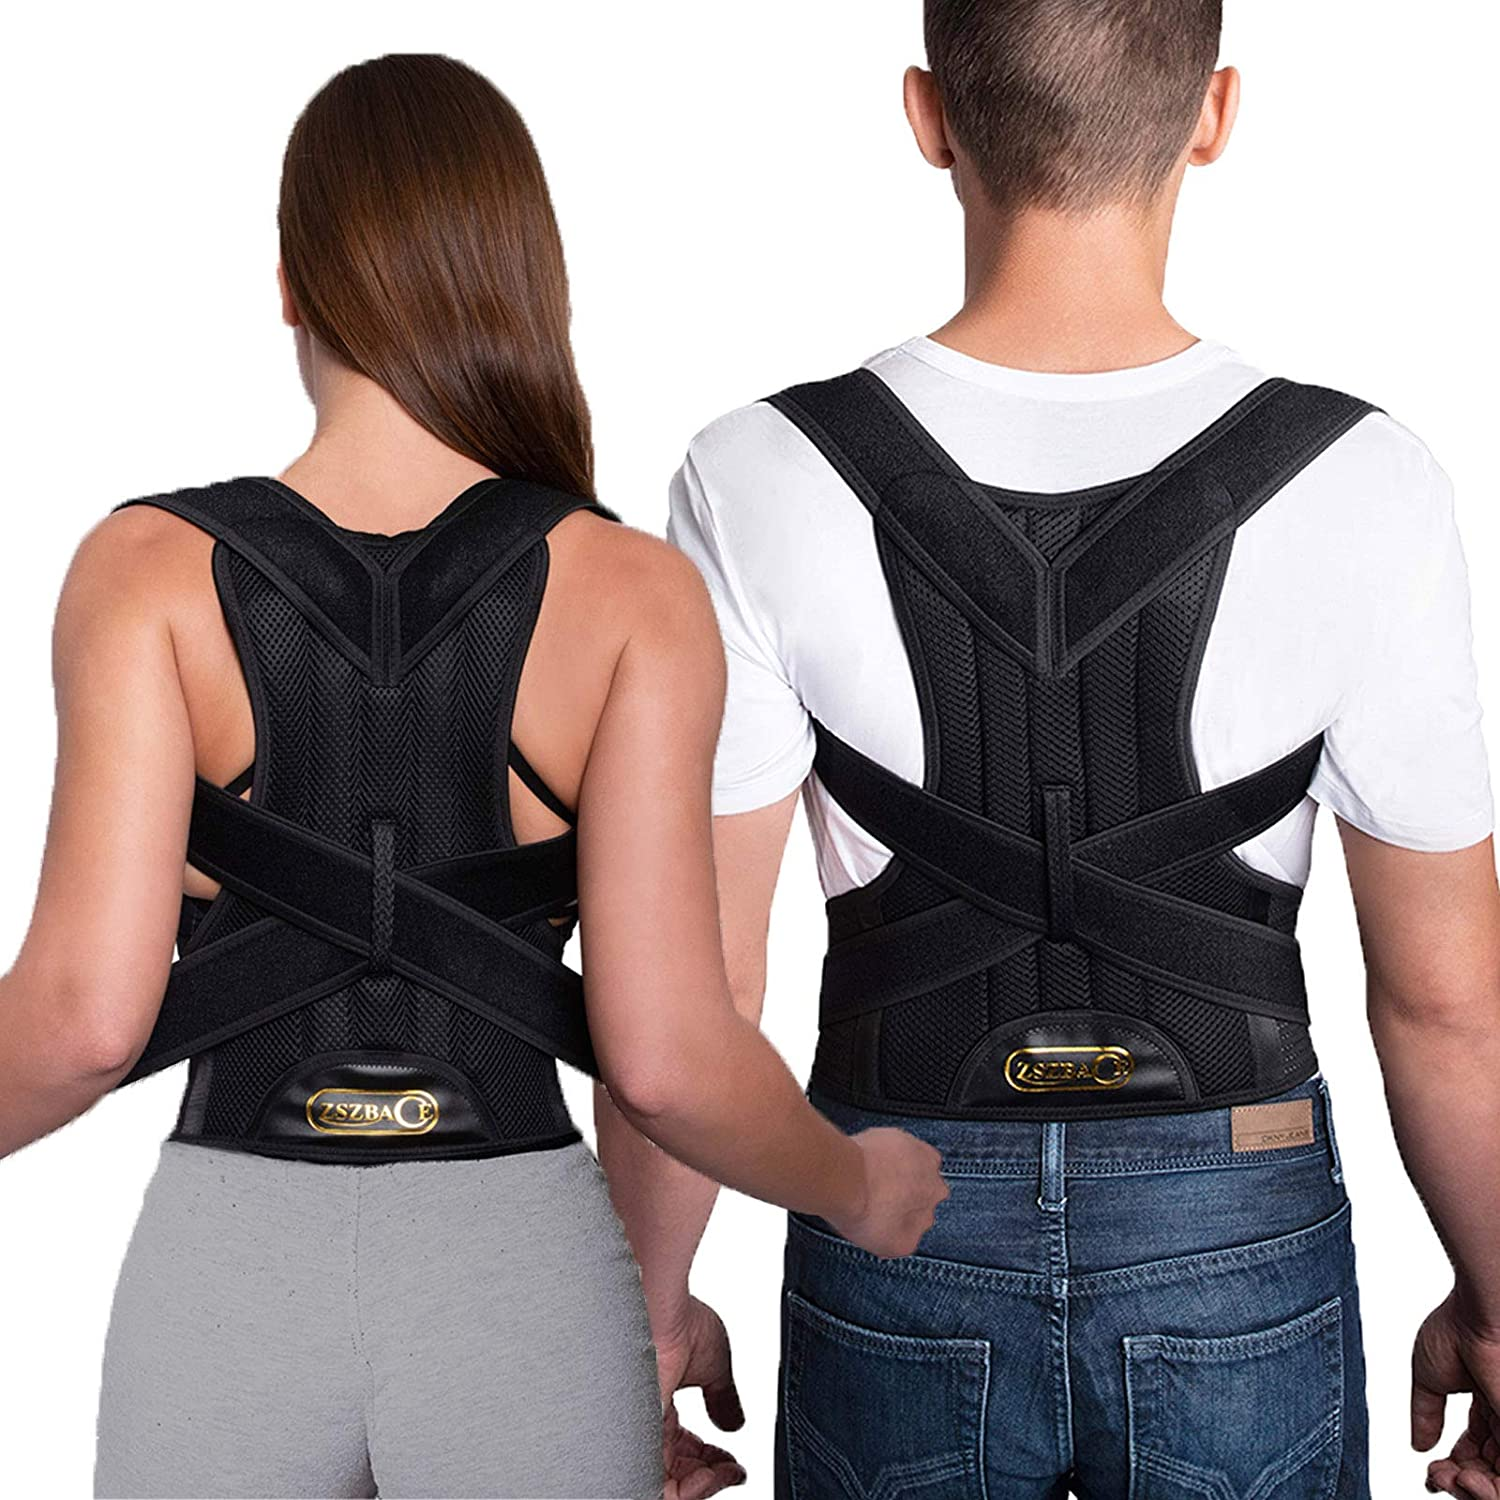 Breathable Milwaukee Mall Back Support Trust and Lumbar Bac Lower Brace provides